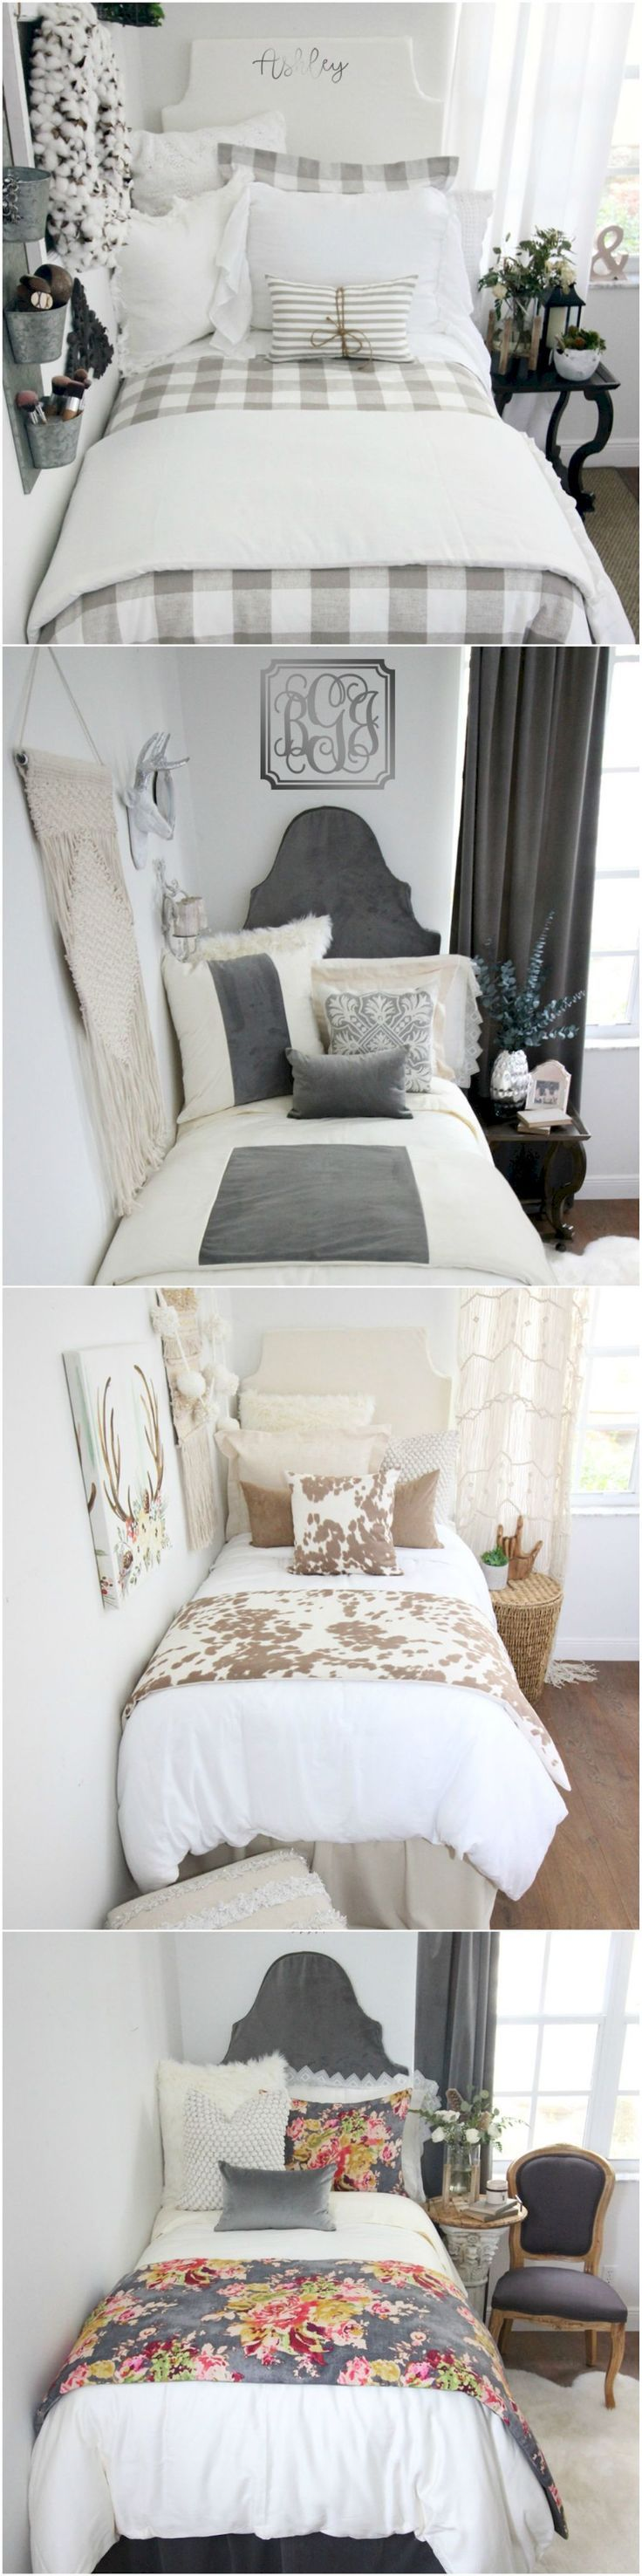 Gorgeous 55 Cute Dorm Room Decorating Ideas on A Budget https://homeastern.com/2017/10/13/55-cute-dorm-room-decorating-ideas-budget/